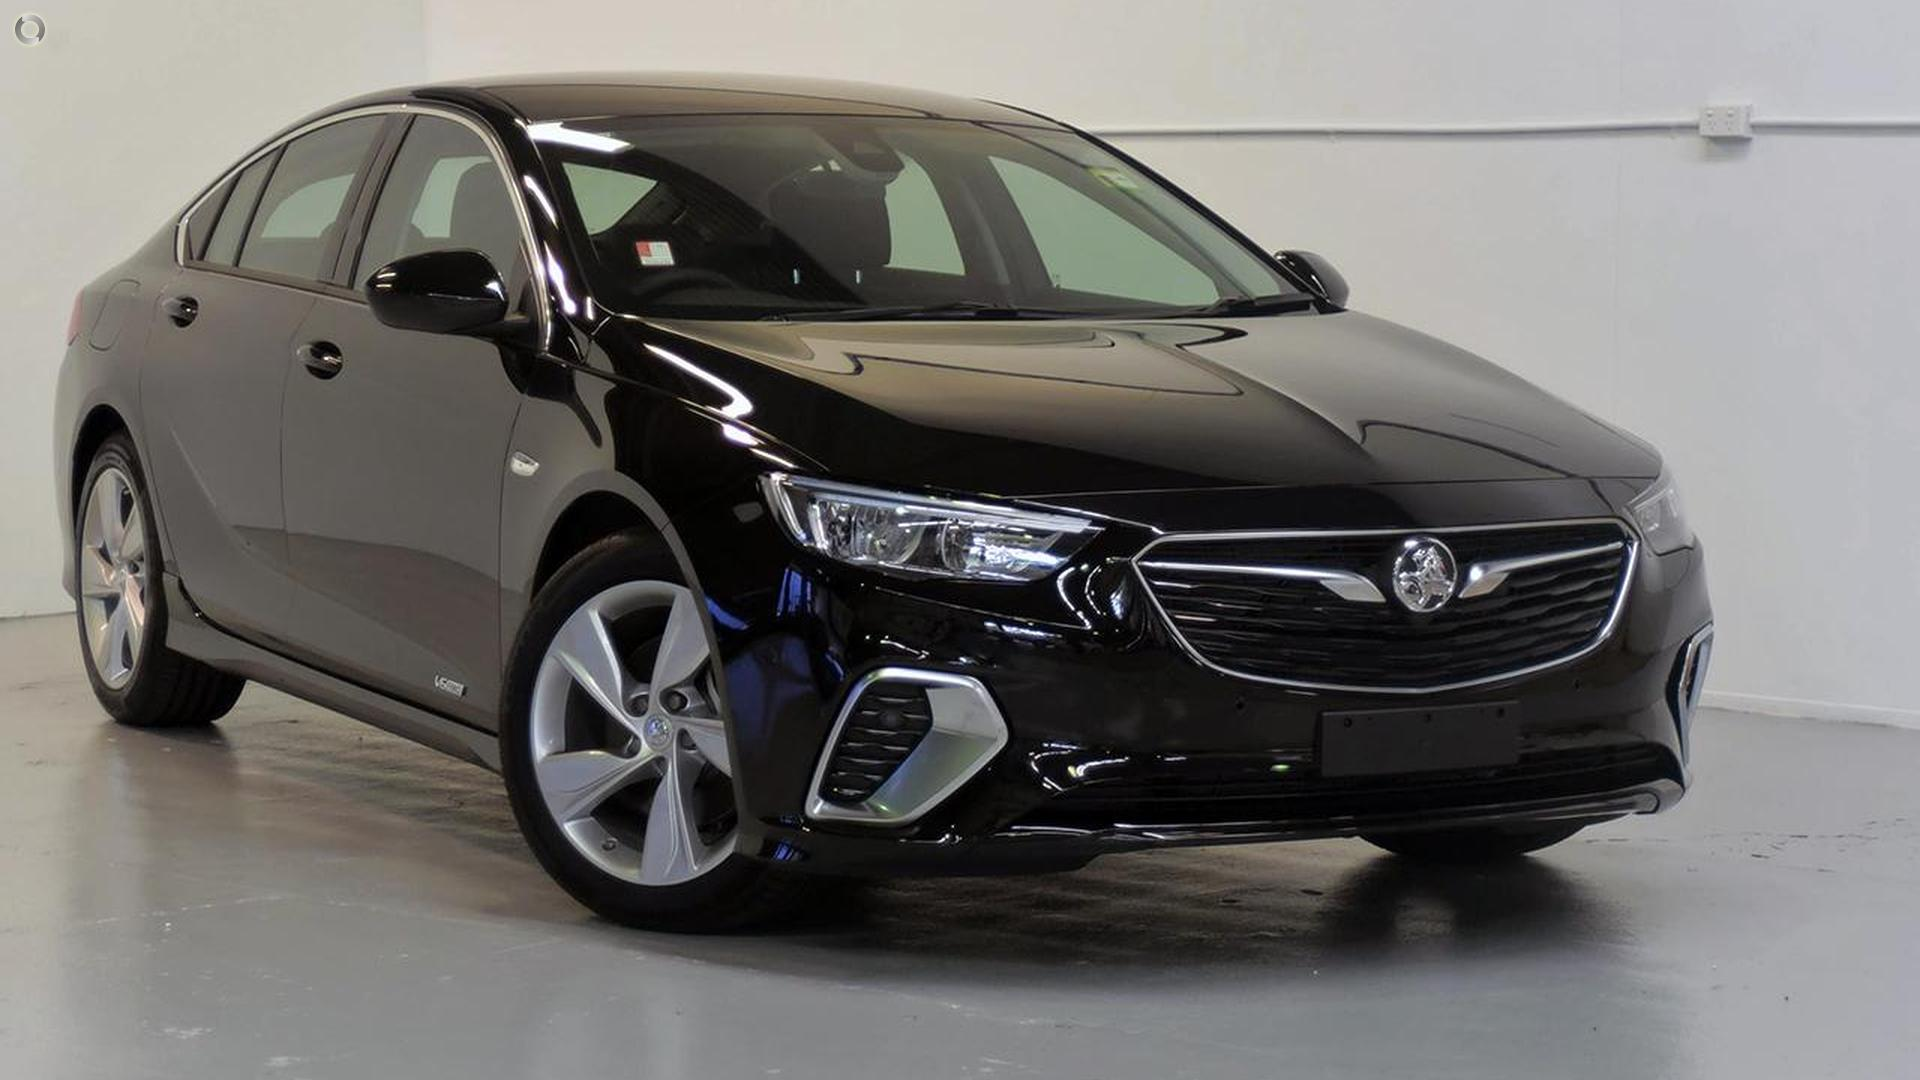 2018 Holden Commodore Rs-v